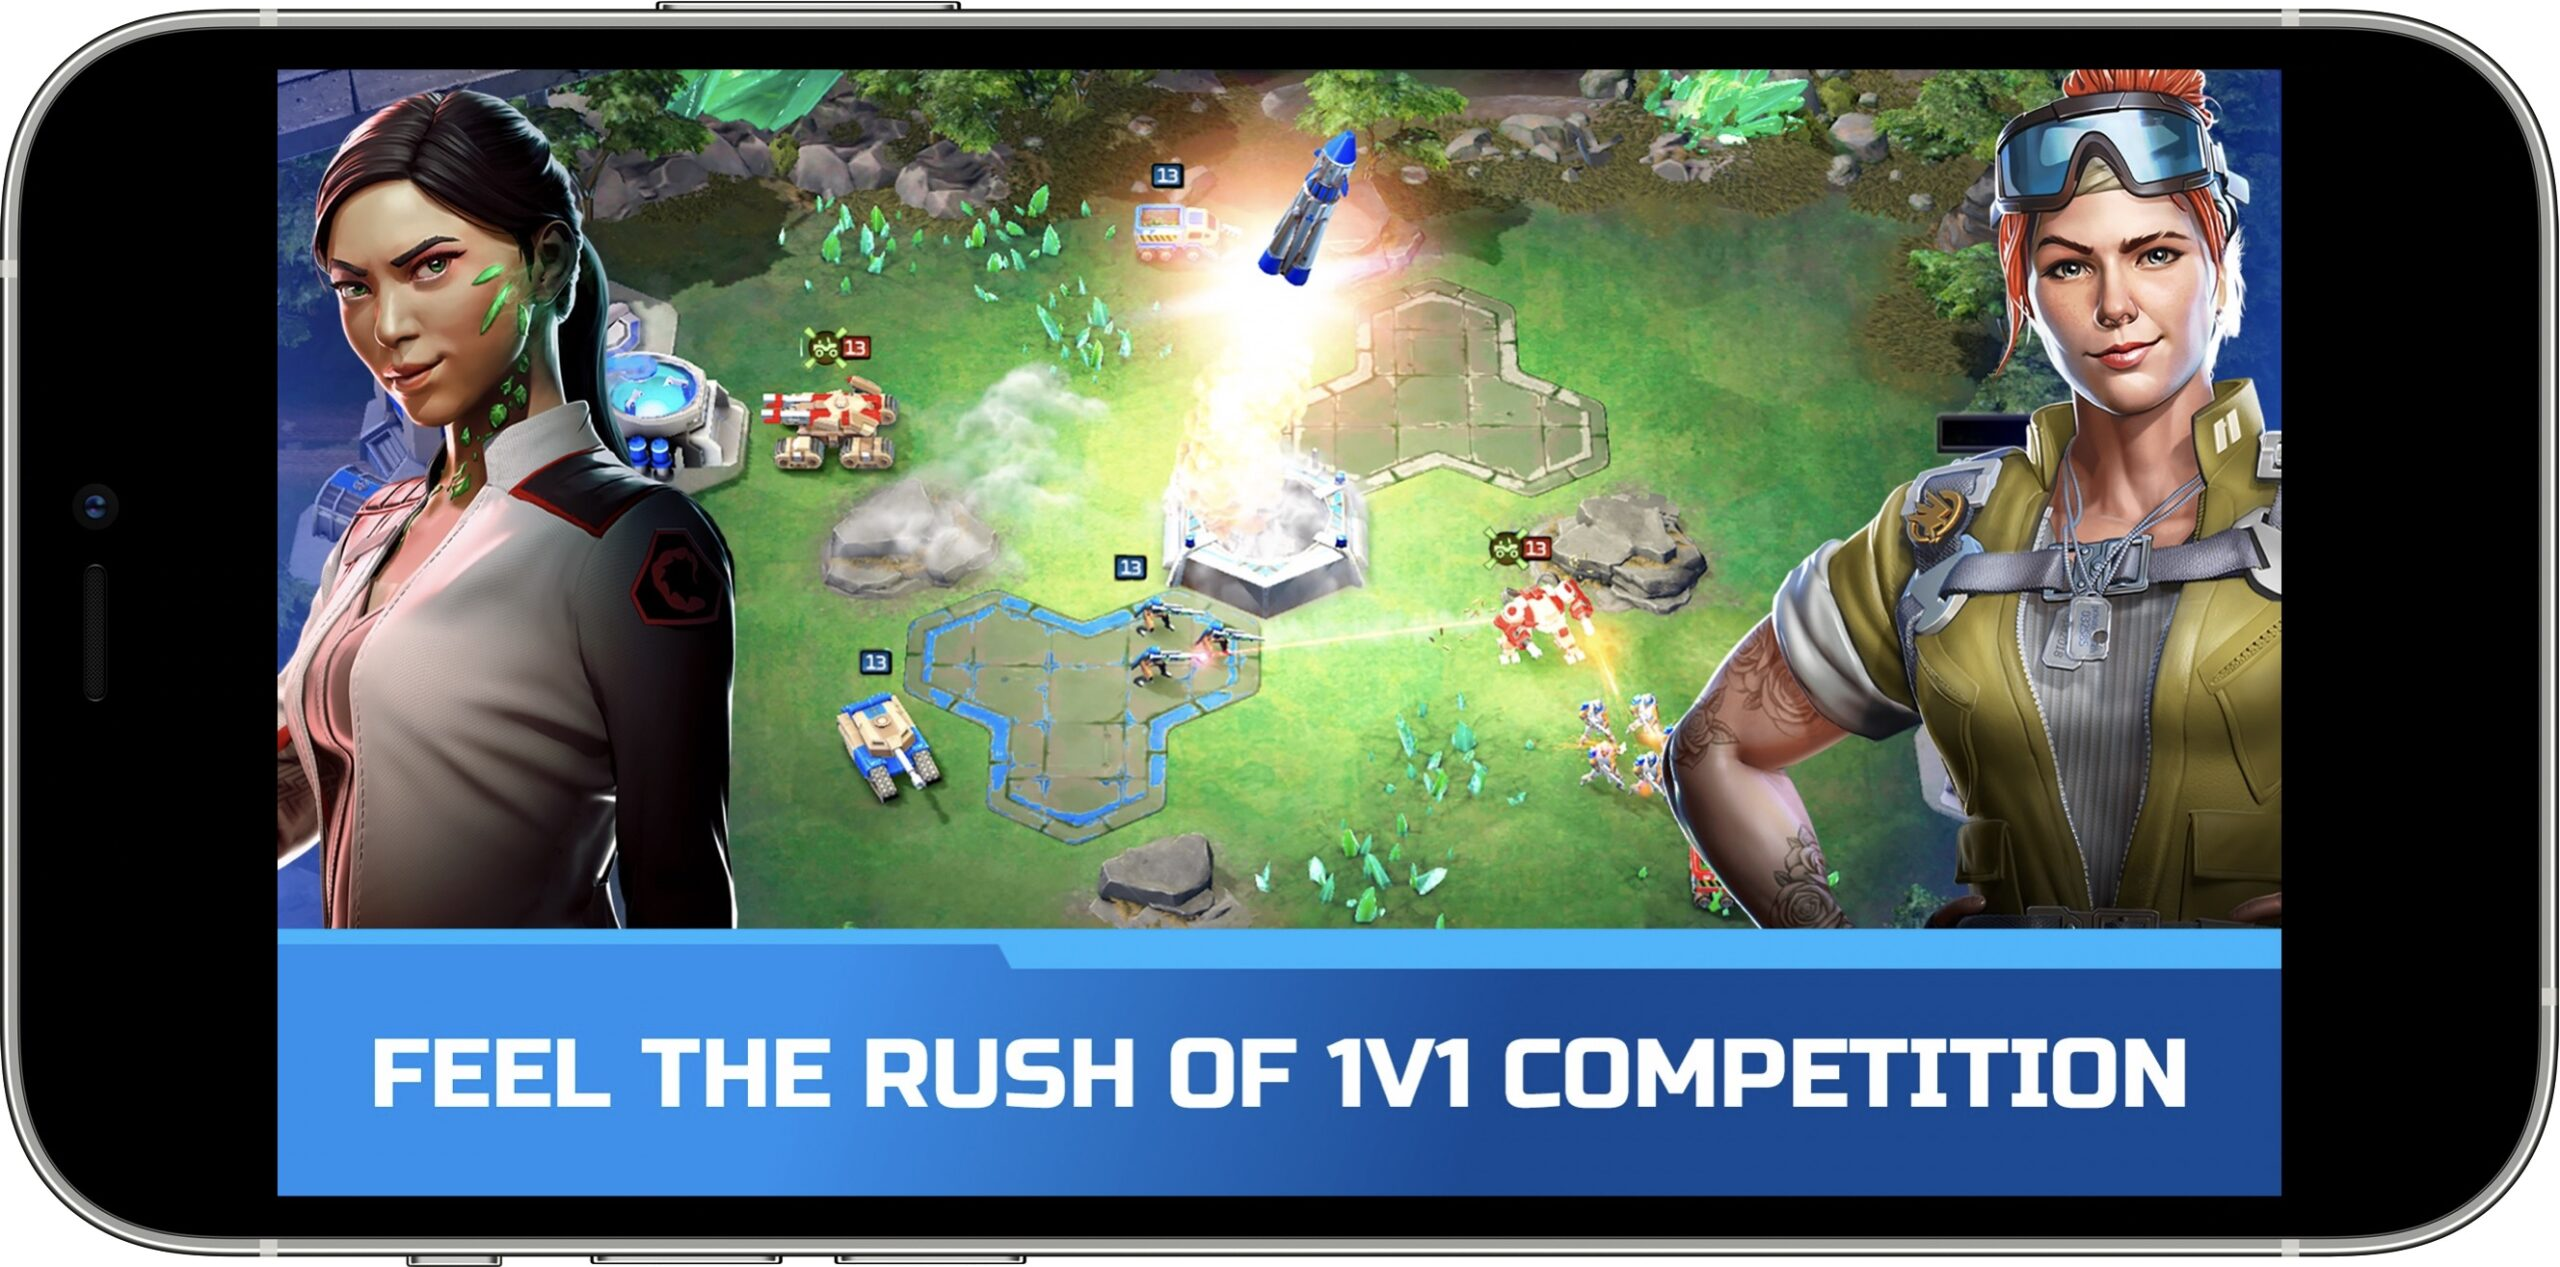 Command and conquer rivals PVP